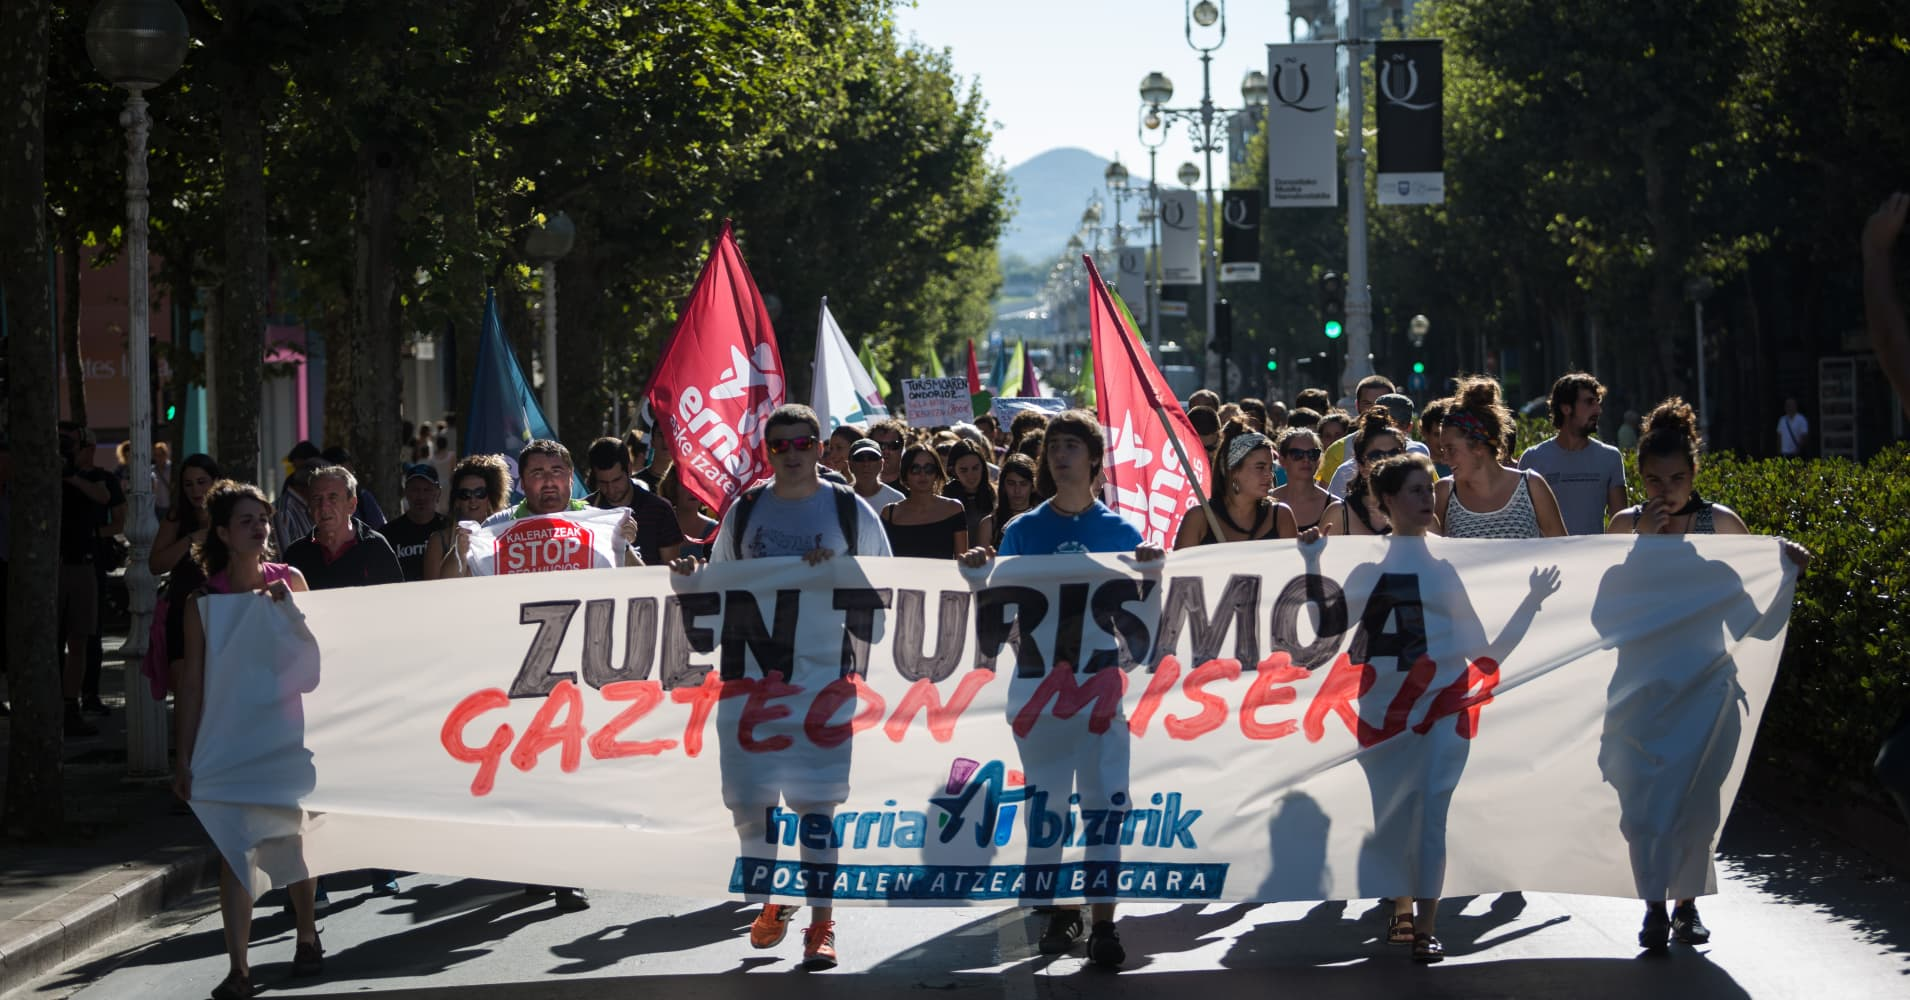 Protesters march holding a banner reading 'Your tourism is misery for the young' in San Sebastian, Spain on August 17, 2017.